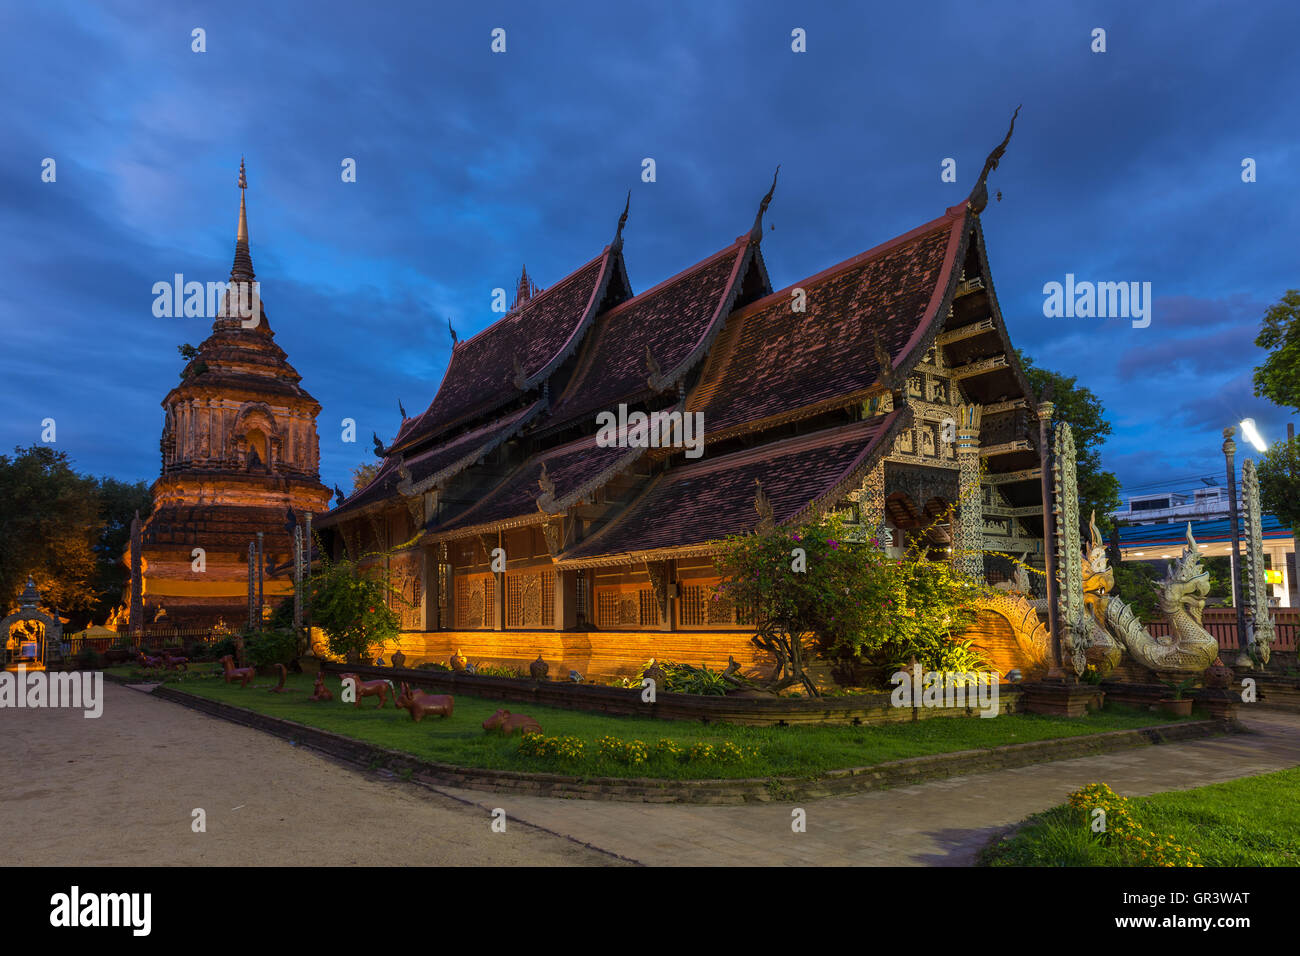 at dusk, one of the oldest temples in Chiang Mai, Thailand - Stock Image